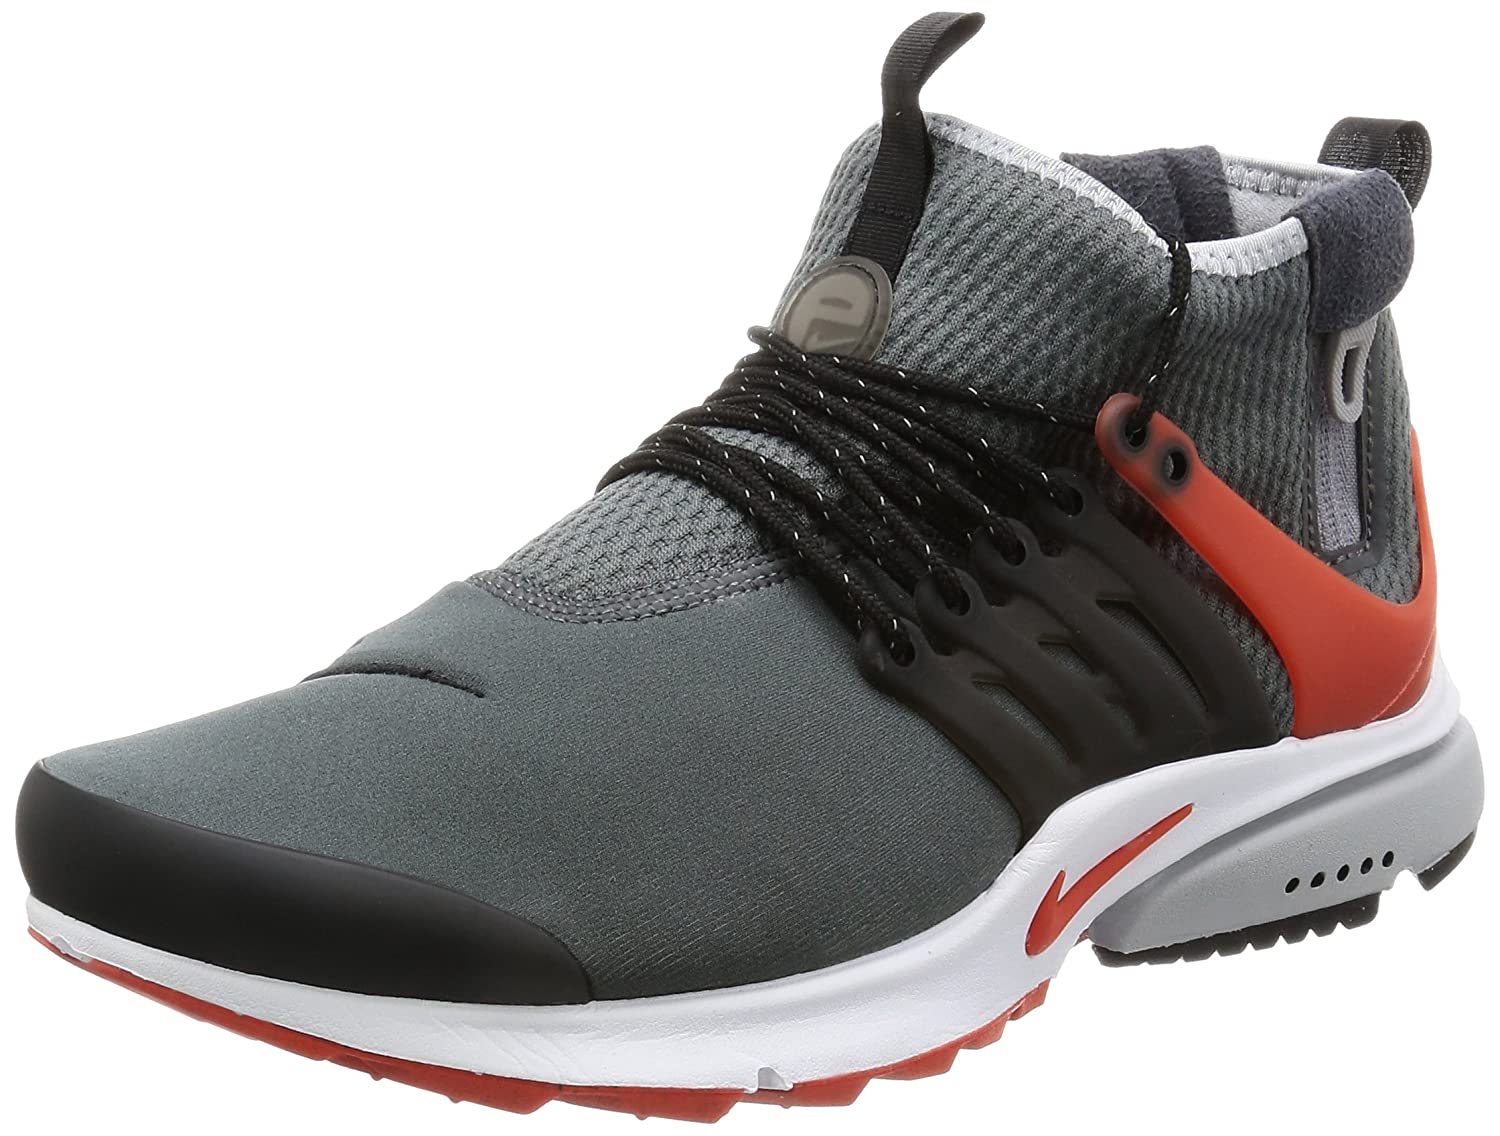 outlet on sale authorized site united states Amazon.com | Nike Air Presto Mid Utility | Road Running